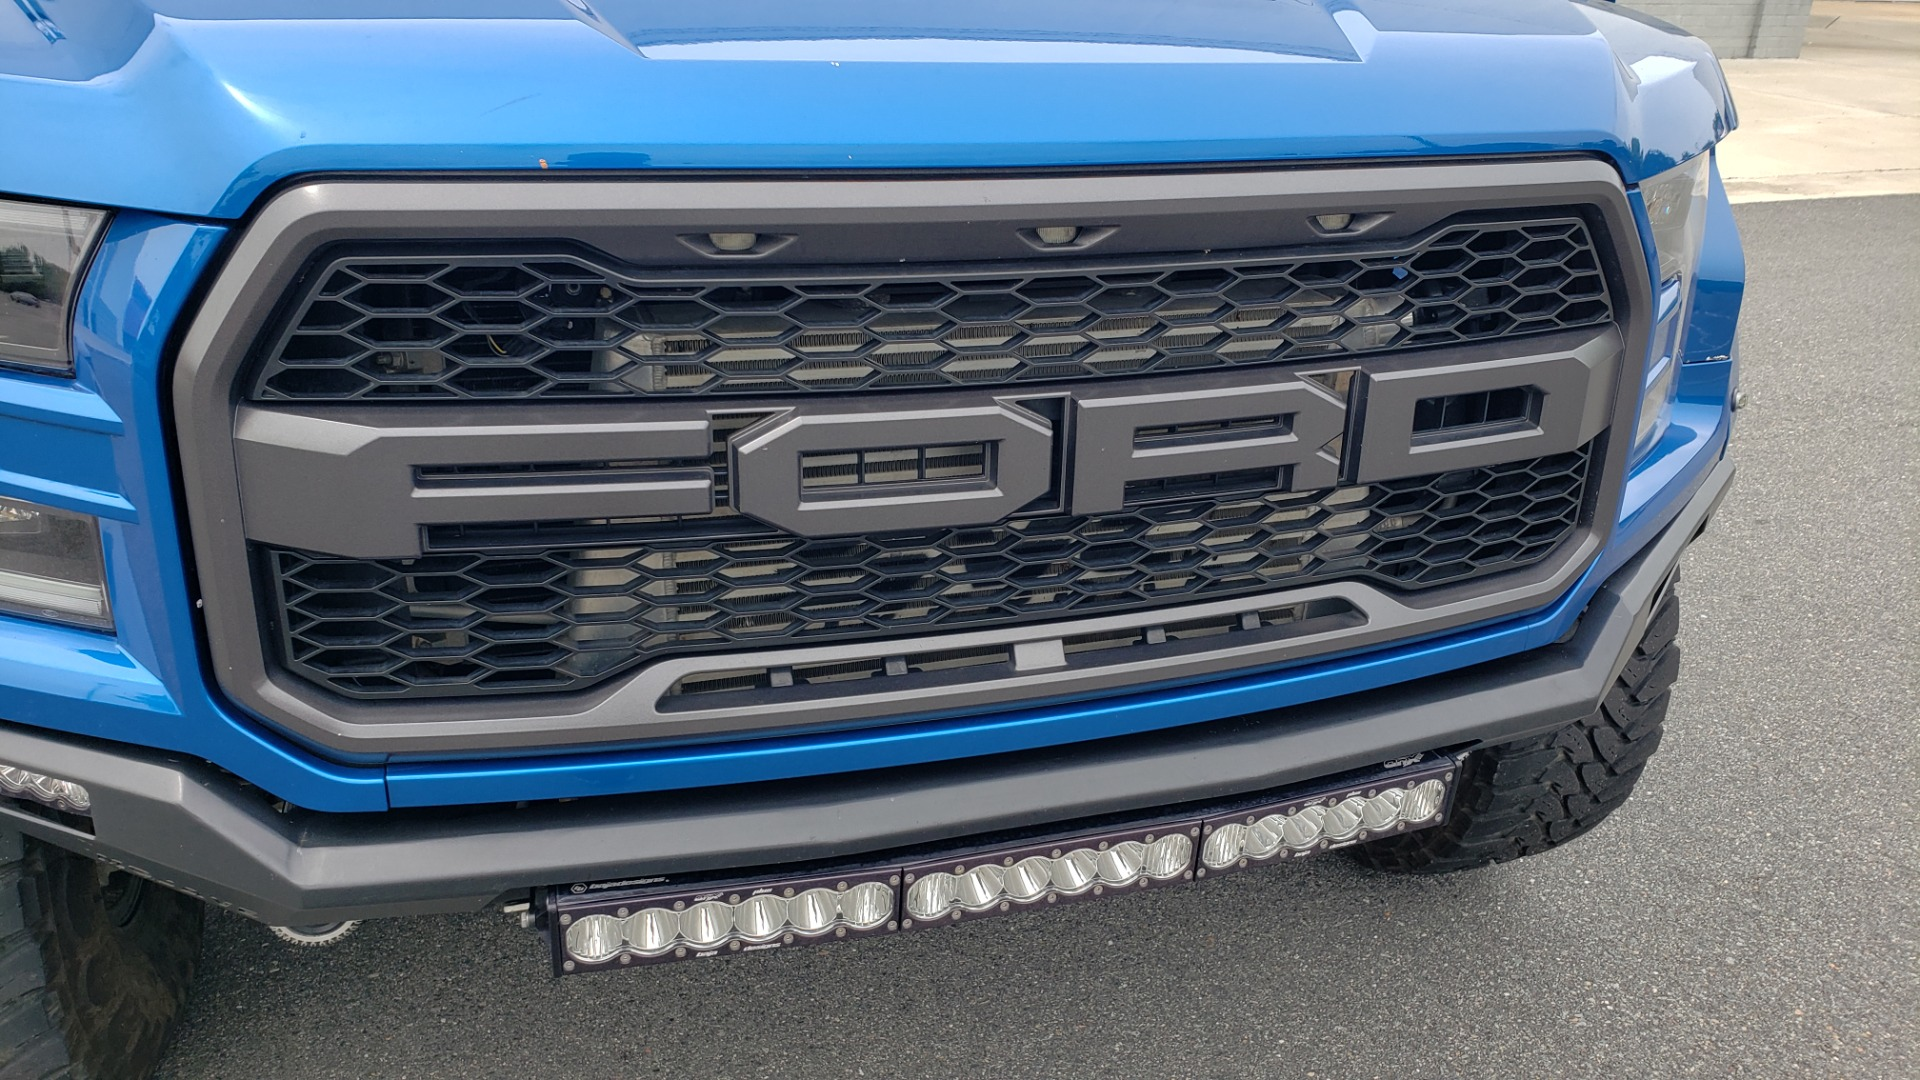 Used 2019 Ford F-150 RAPTOR 4X4 / CREWCAB / PRE-RUNNER CUSTOM SUSPENSION for sale $79,999 at Formula Imports in Charlotte NC 28227 35